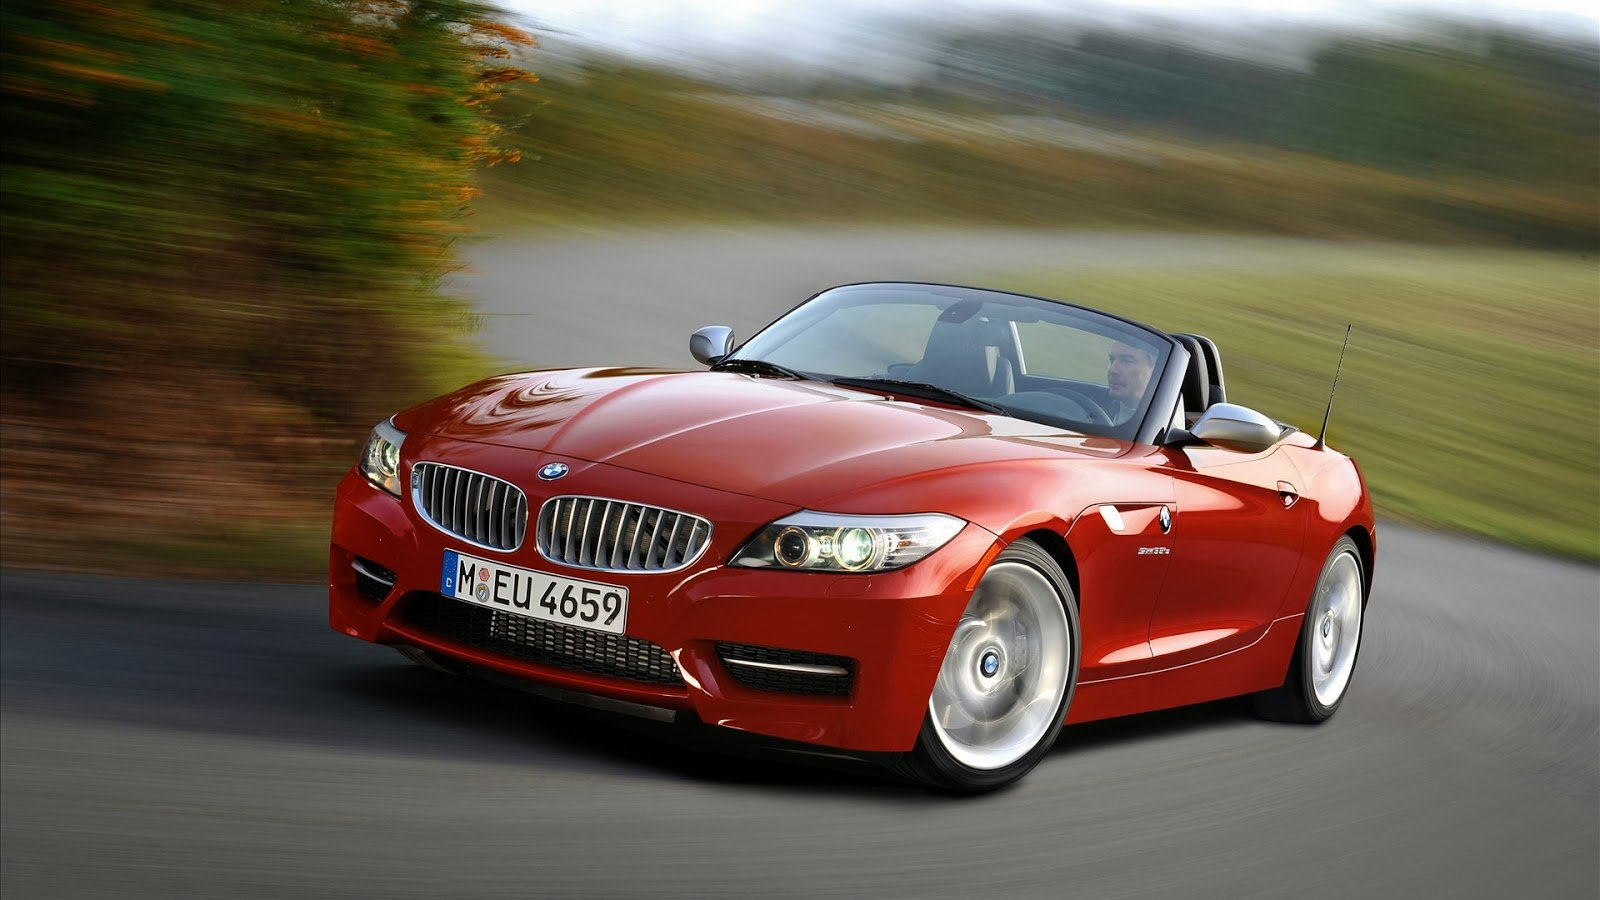 Latest Hd Bmw Car Wallpapers 1080P Mobile Wallpapers Free Download